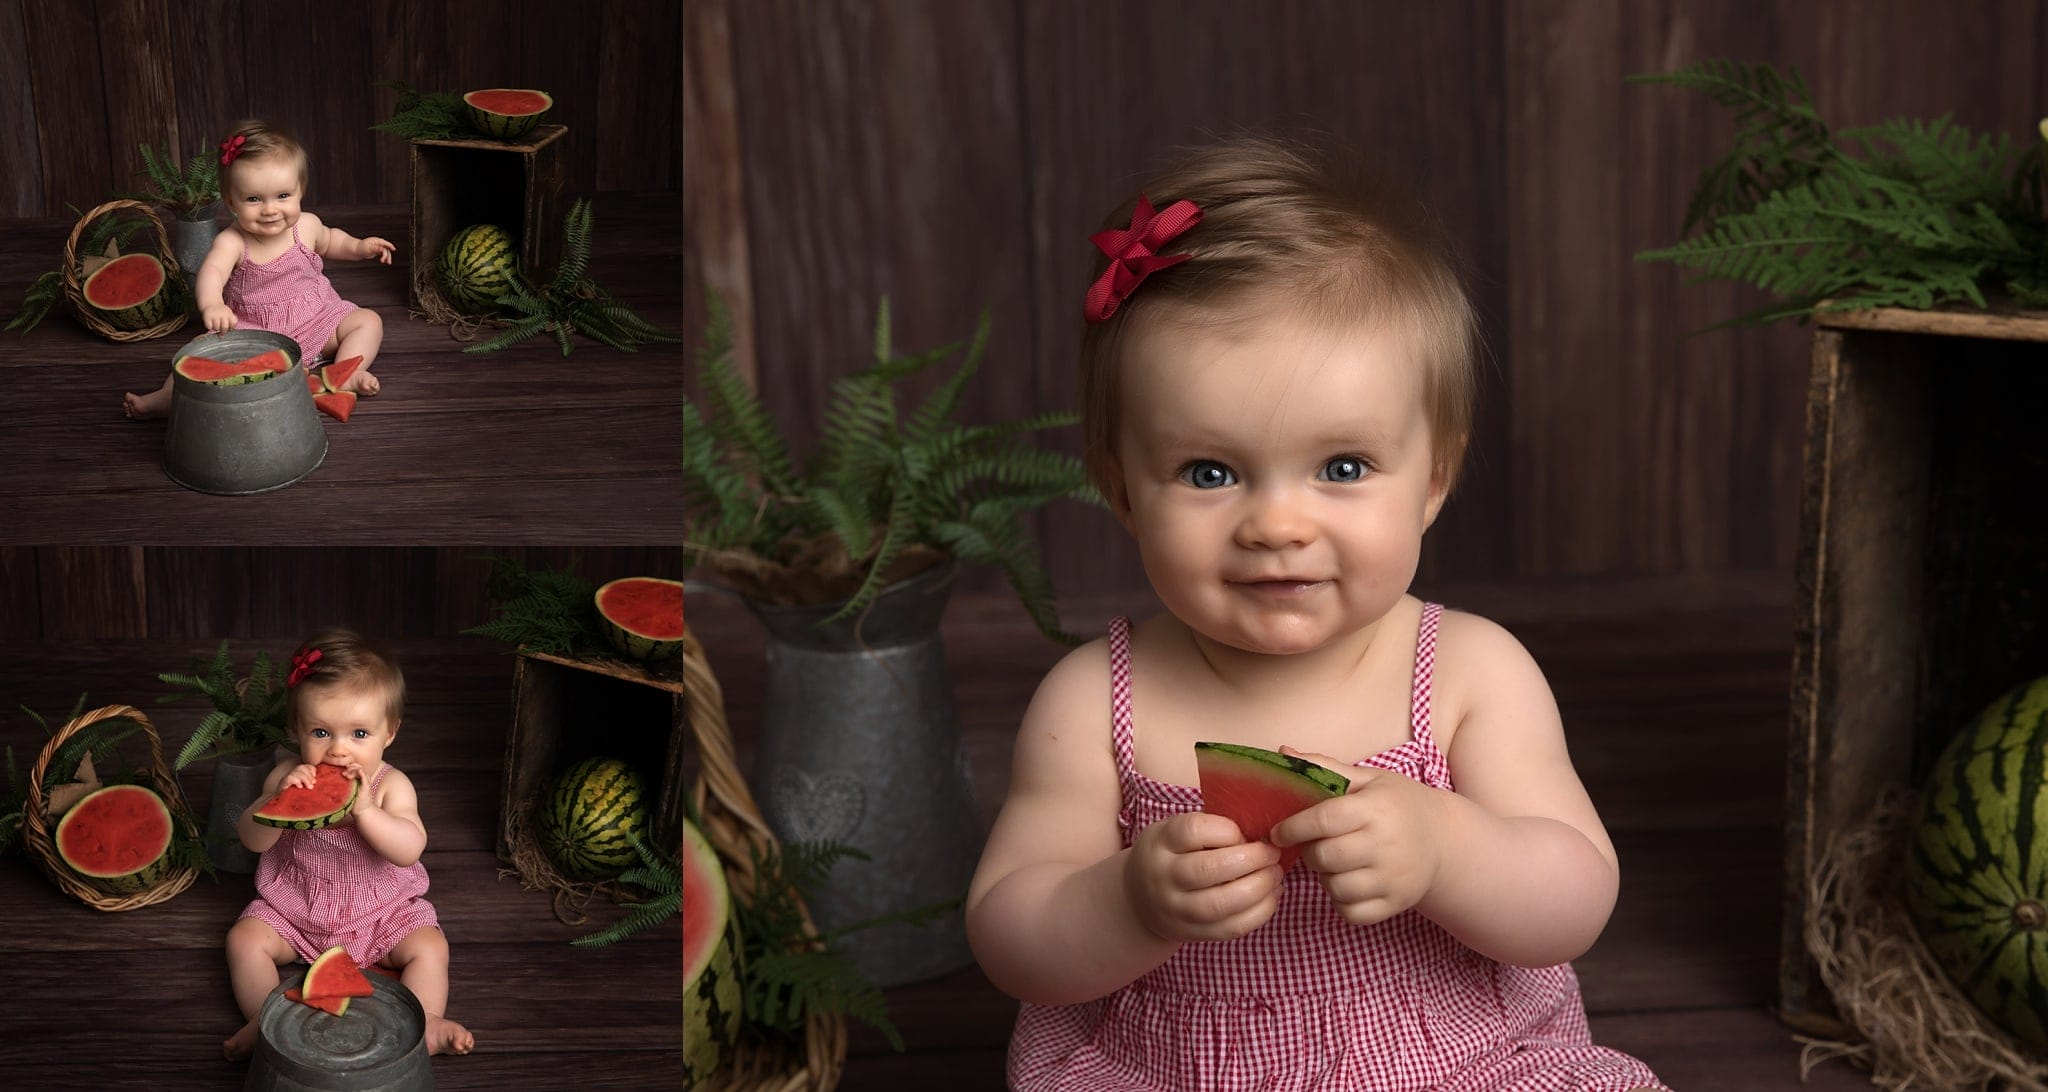 Smiling baby girl eating watermelon slices